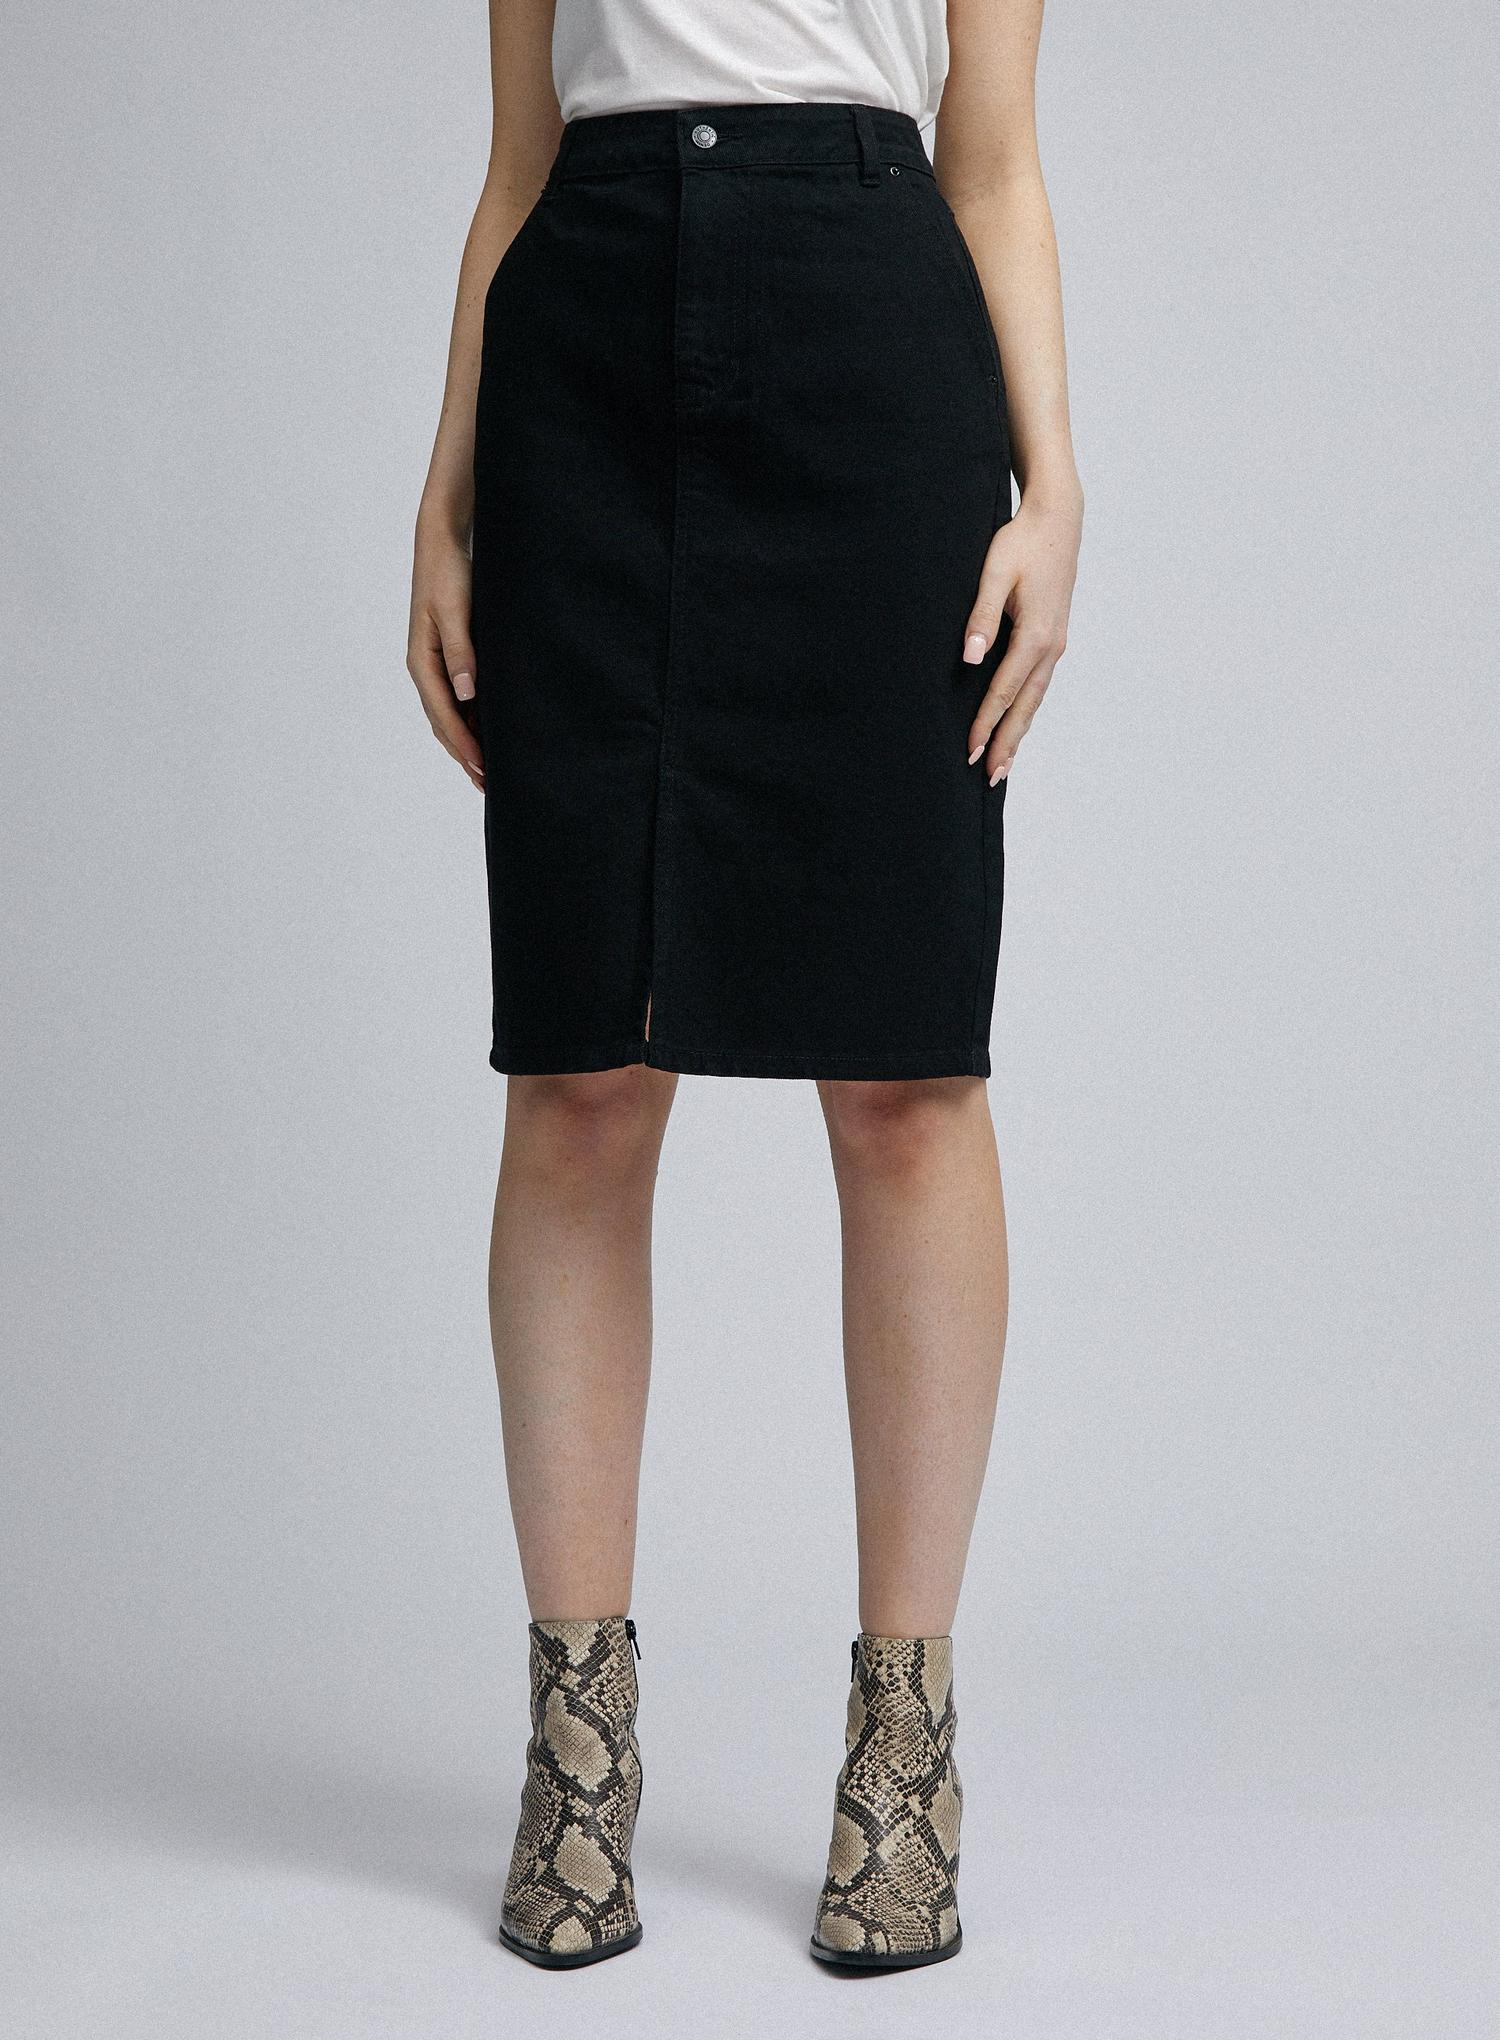 105 Black Organic Cotton Denim Midi Skirt image number 4